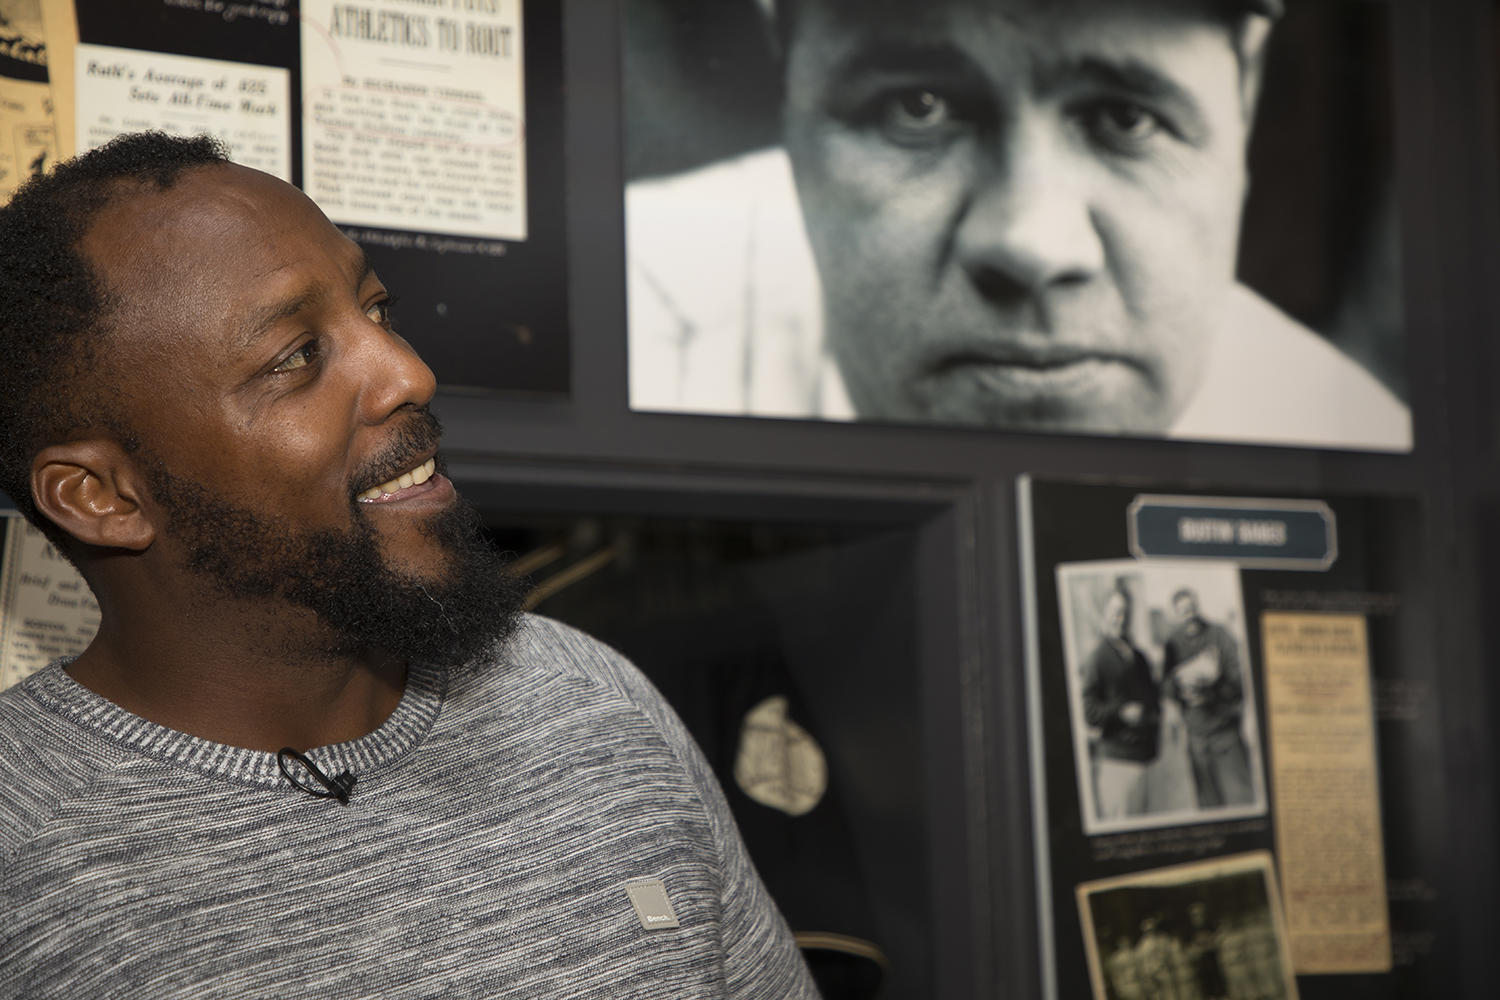 Vladimir Guerrero walks through the <em>Babe Ruth: His Life and Legend</em> exhibit at the Hall of Fame. (Milo Stewart Jr./National Baseball Hall of Fame and Museum)